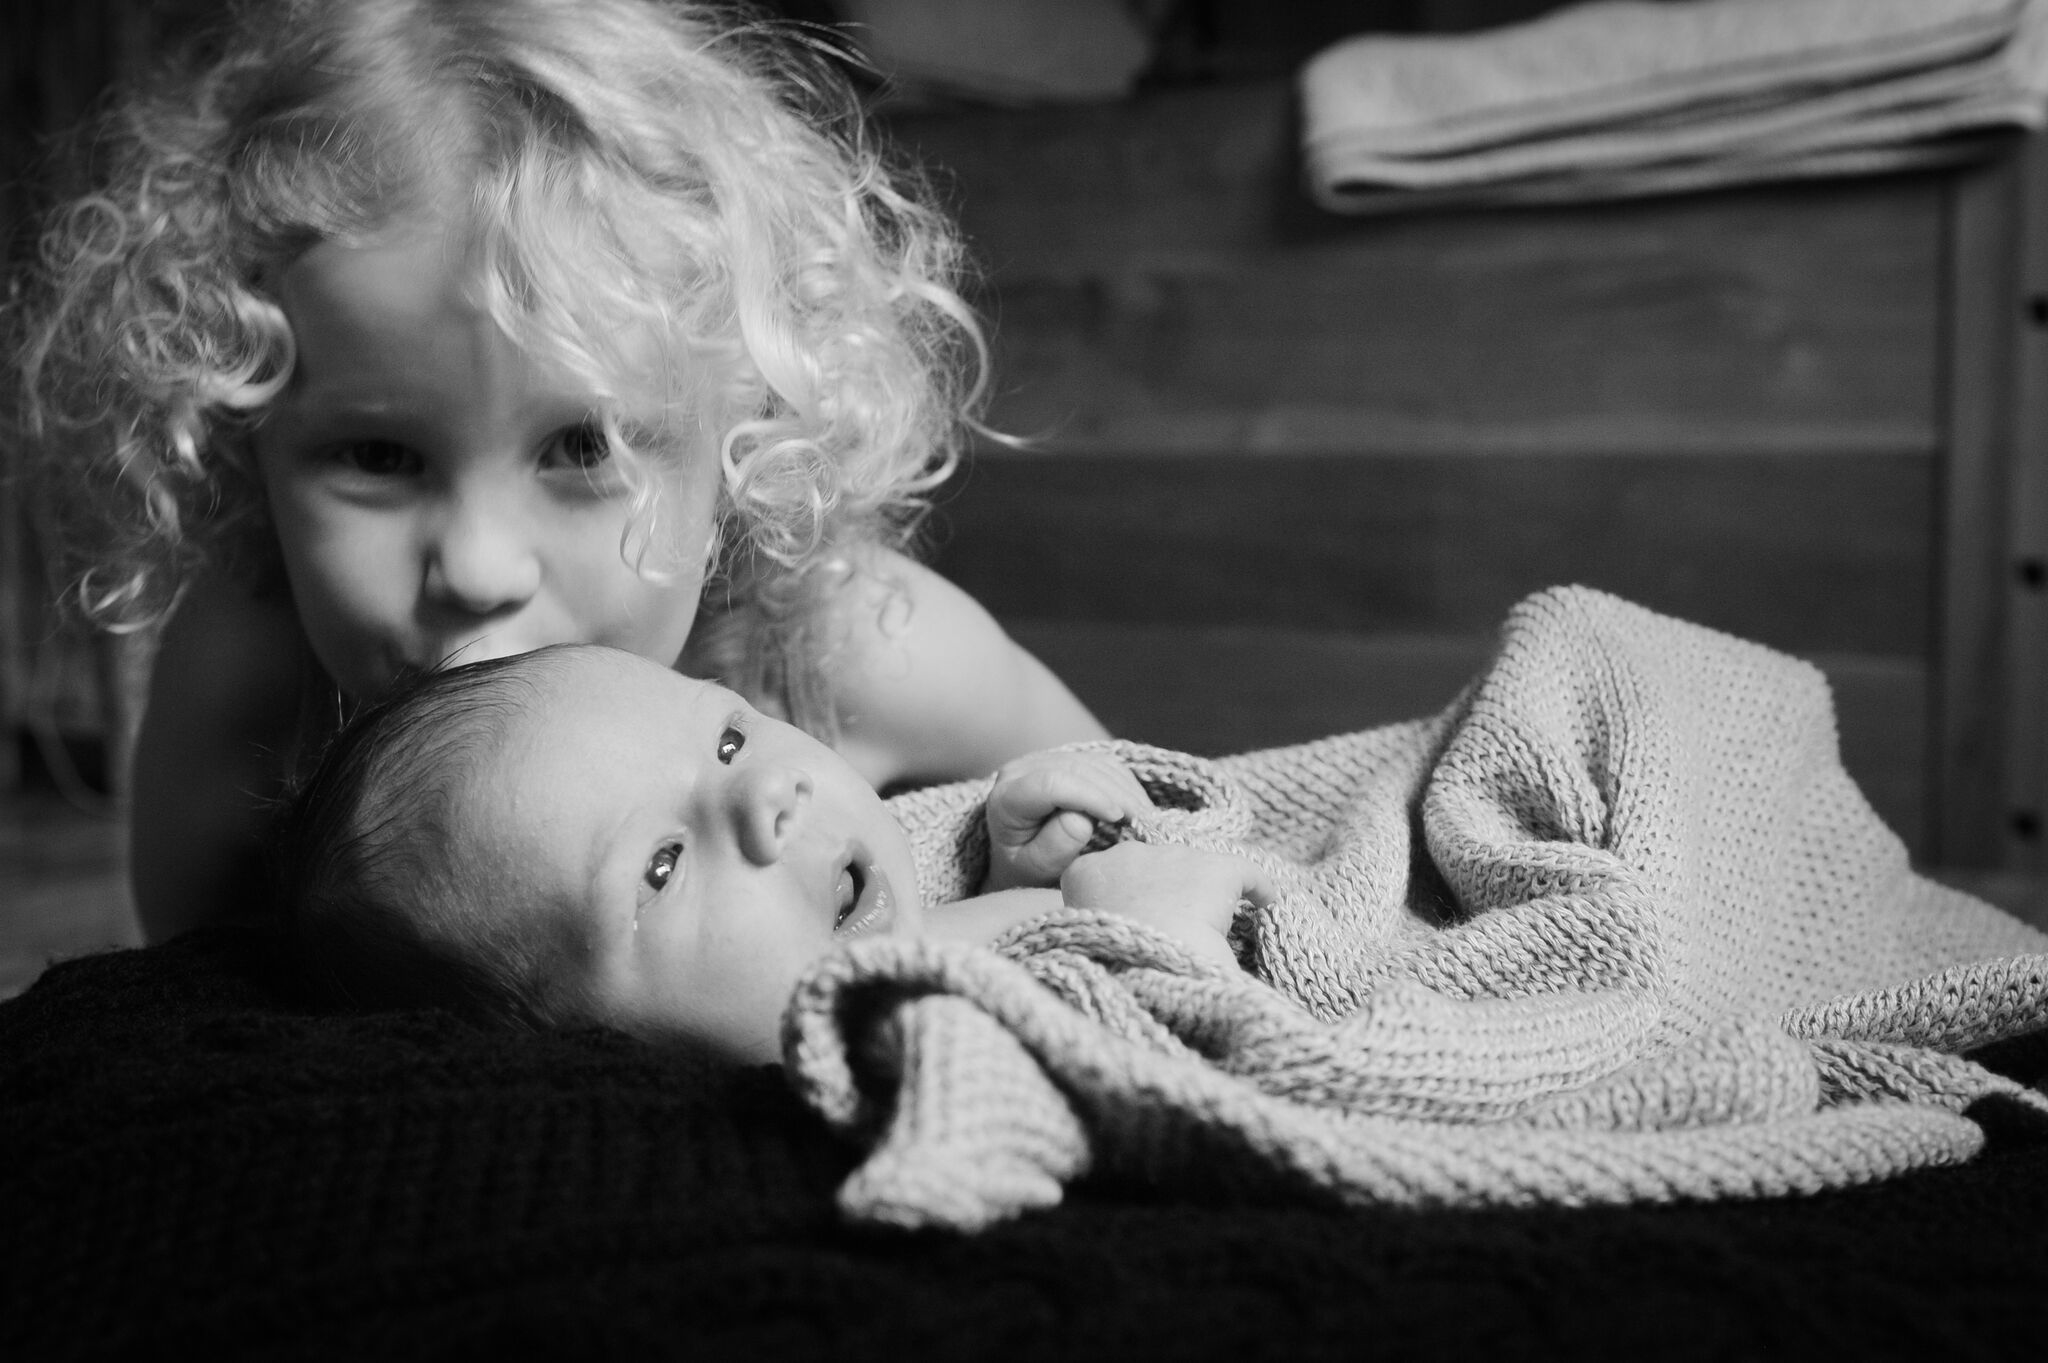 Black and white photo of a newborn baby wrapped in a blanket being kissed by a curly haired sibling.